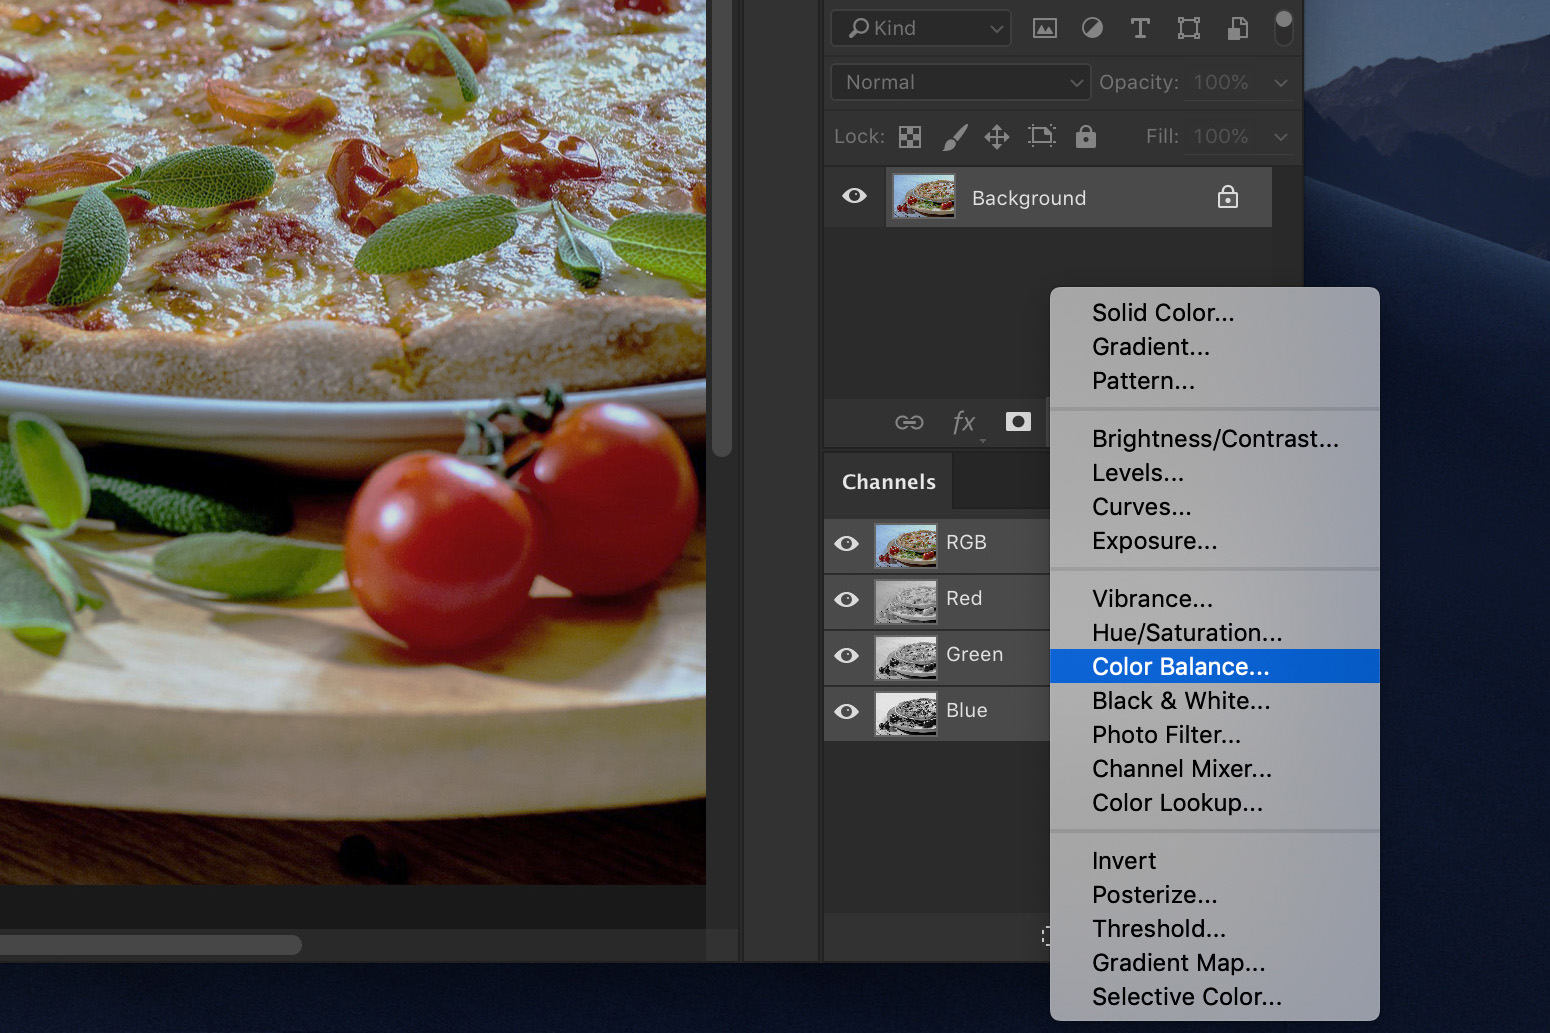 A screenshot showing how to edit food photography in Photoshop - color balance